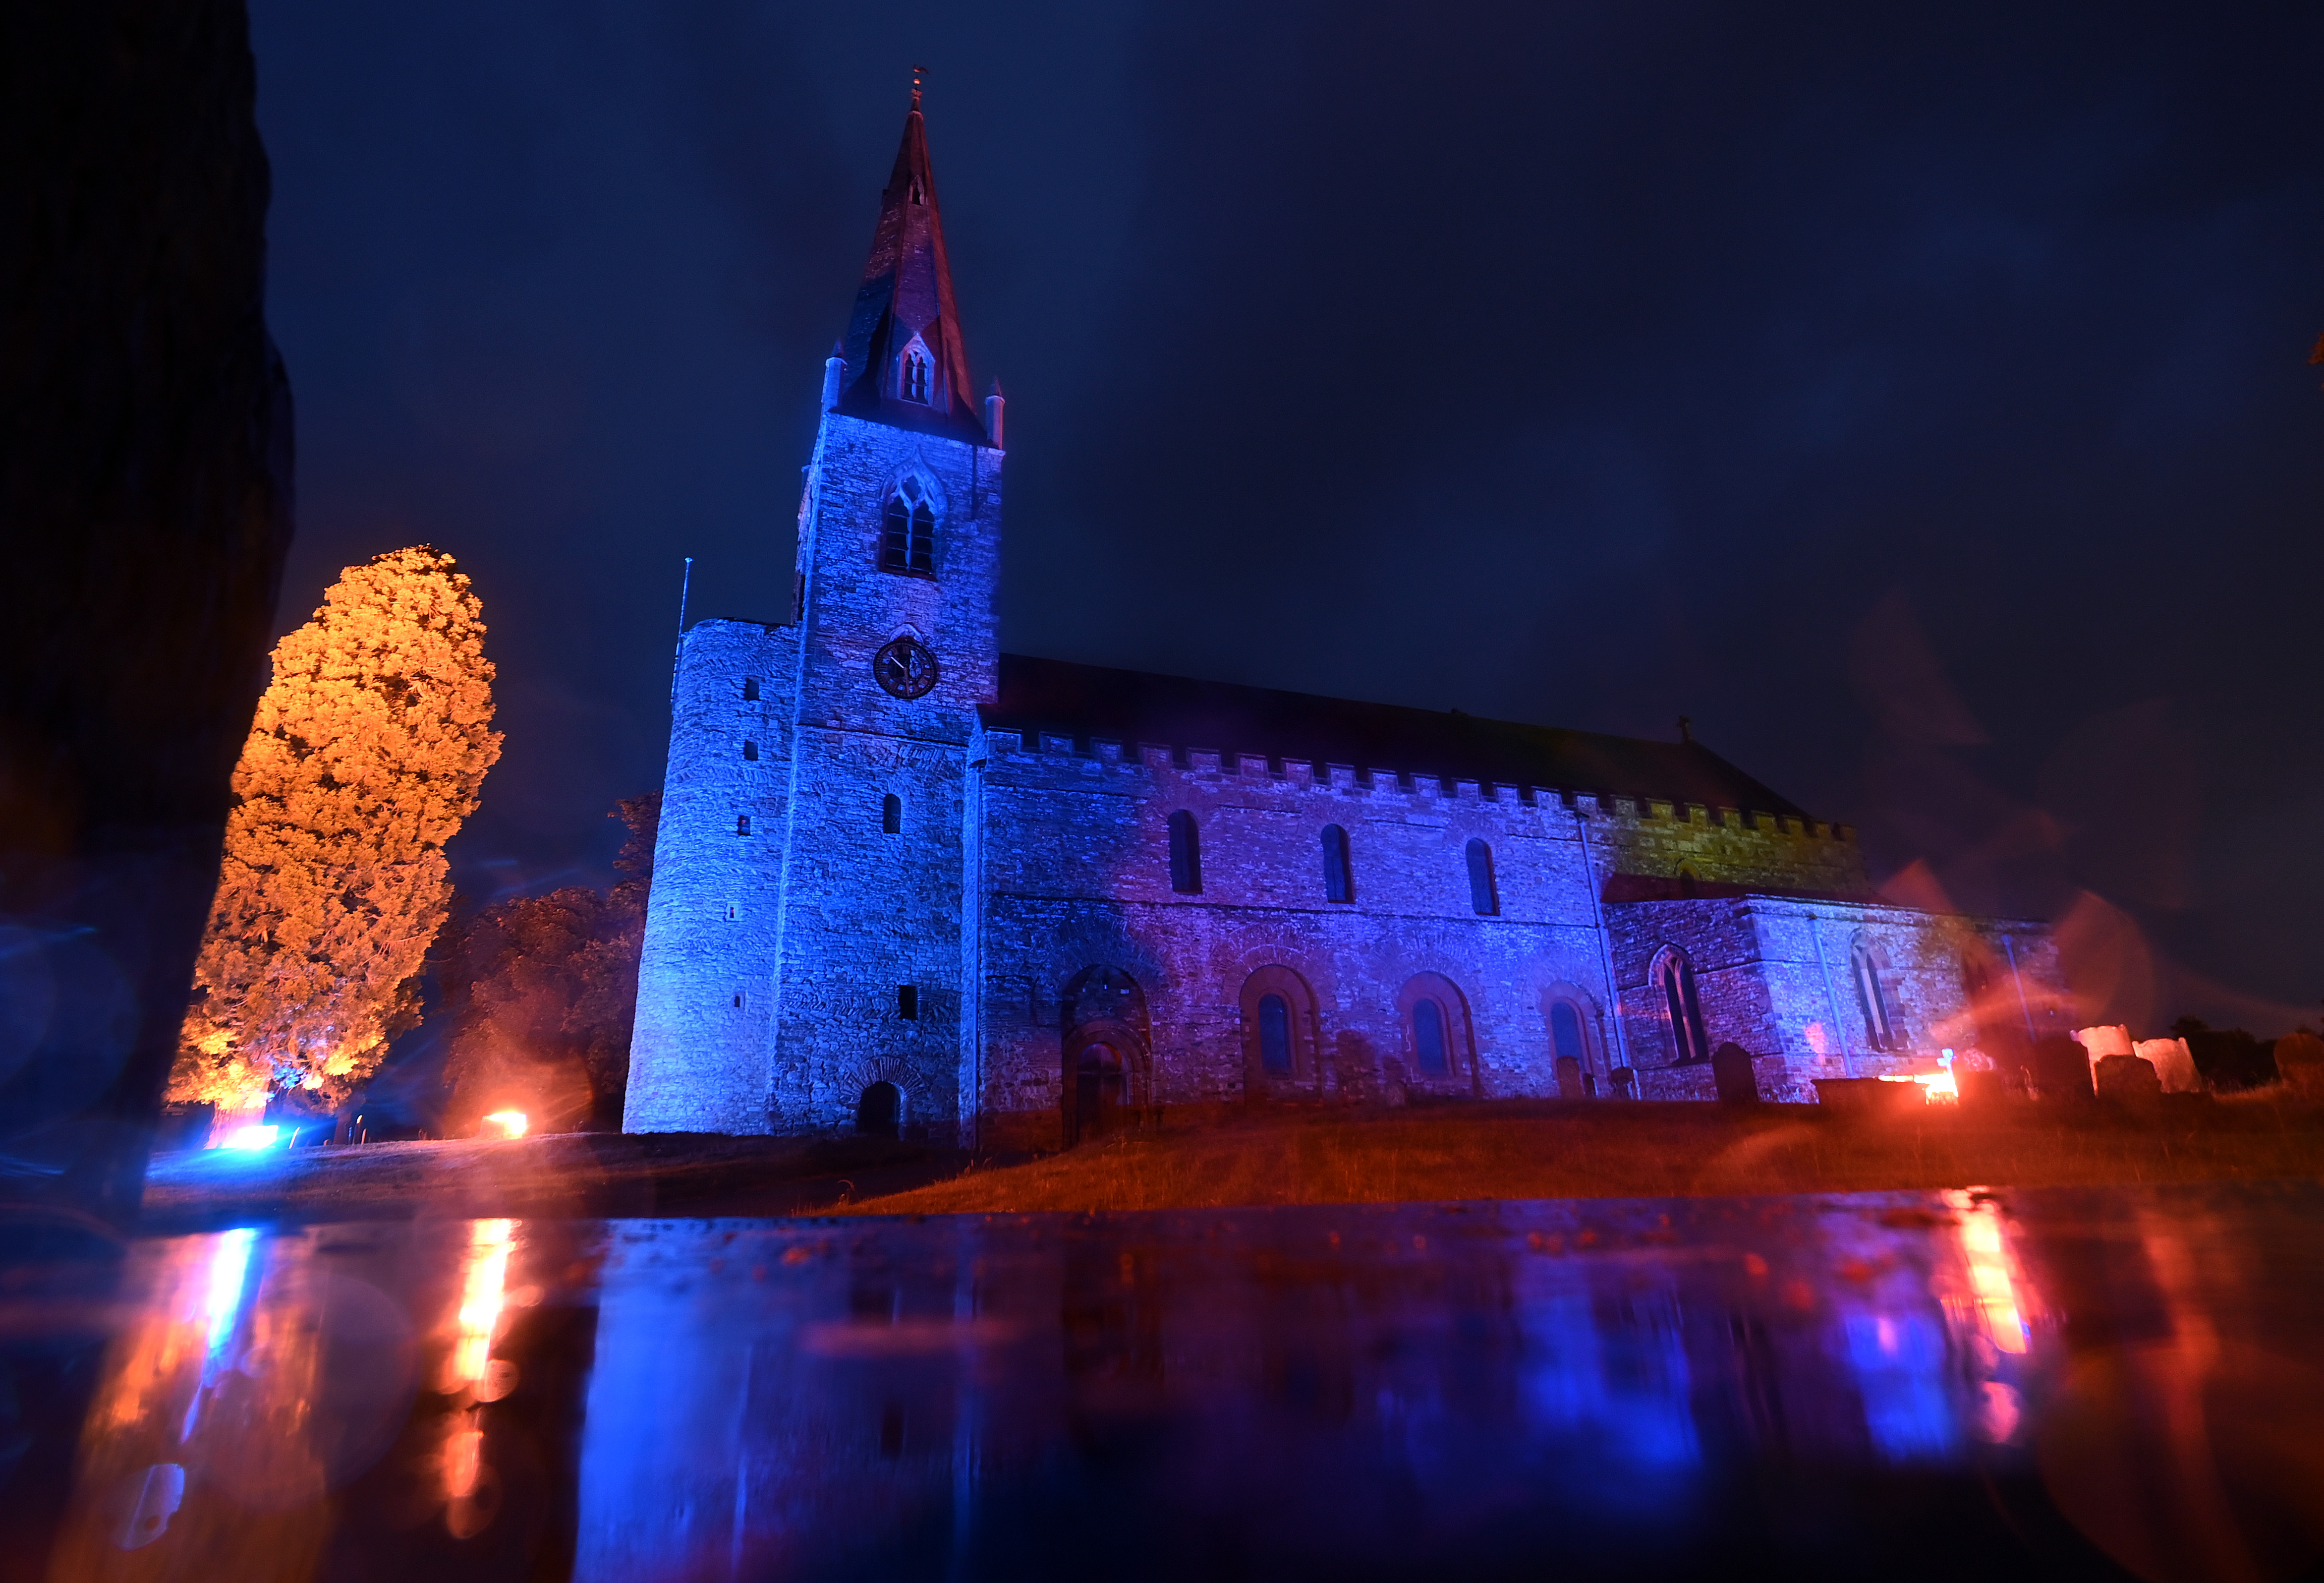 BRIXWORTH - JUNE 04: All Saints Anglo Saxon Church is lit up in blue in support of the NHS on June 04, 2020 in Brixworth, England. The British government further relaxed Covid-19 quarantine measures in England this week, allowing groups of six people from different households to meet in parks and gardens, subject to social distancing rules. Many schools also reopened and vulnerable people who are shielding in their homes are allowed to go outside again. (Photo by Clive Mason/Getty Images)